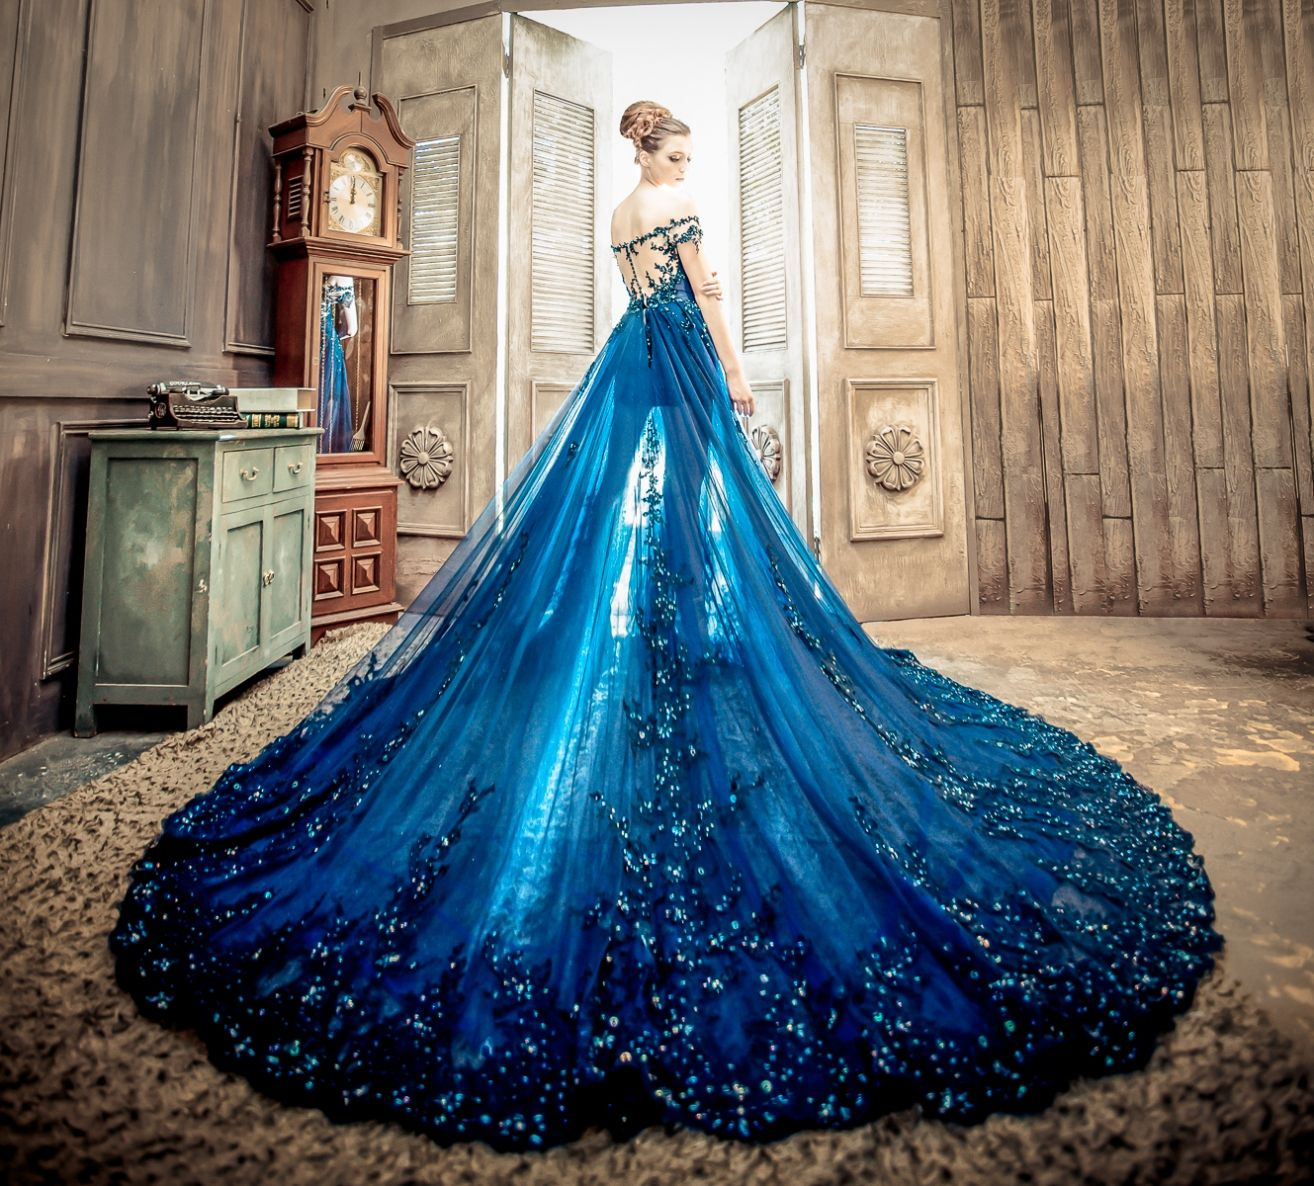 We canut help but drool over this jawdropping gown by no wedding